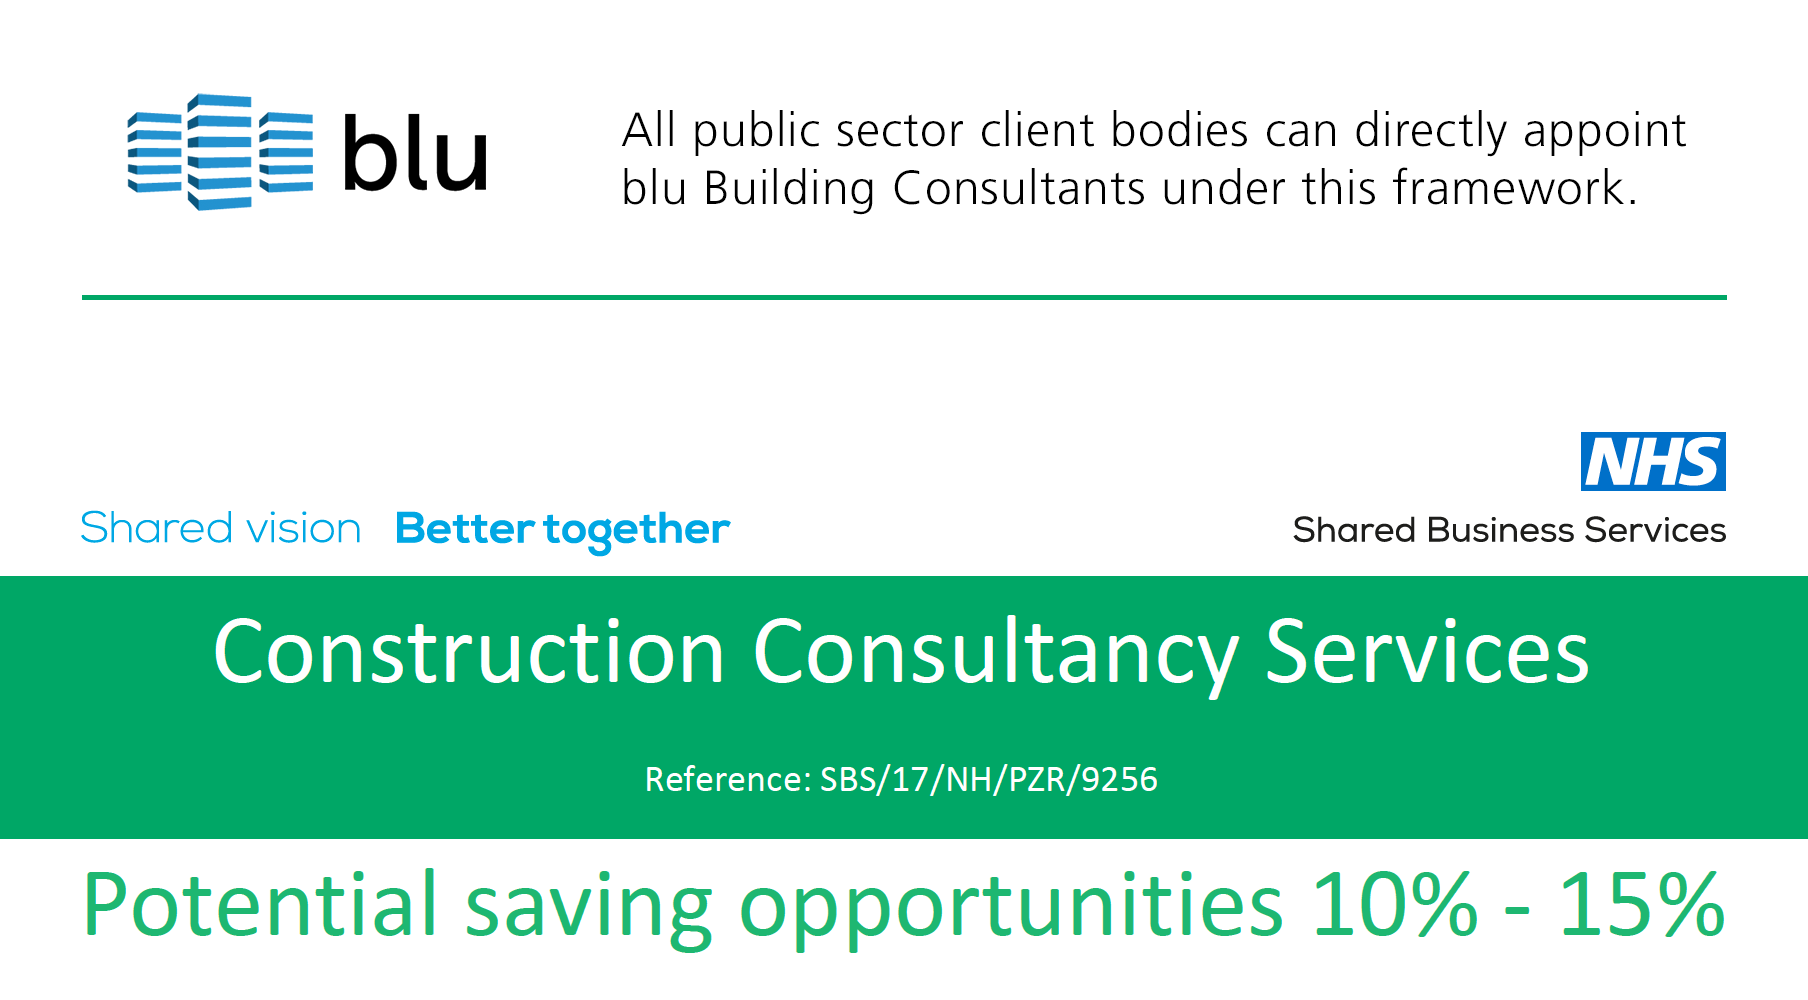 Blu Building Consultants Shared Business Services SBS